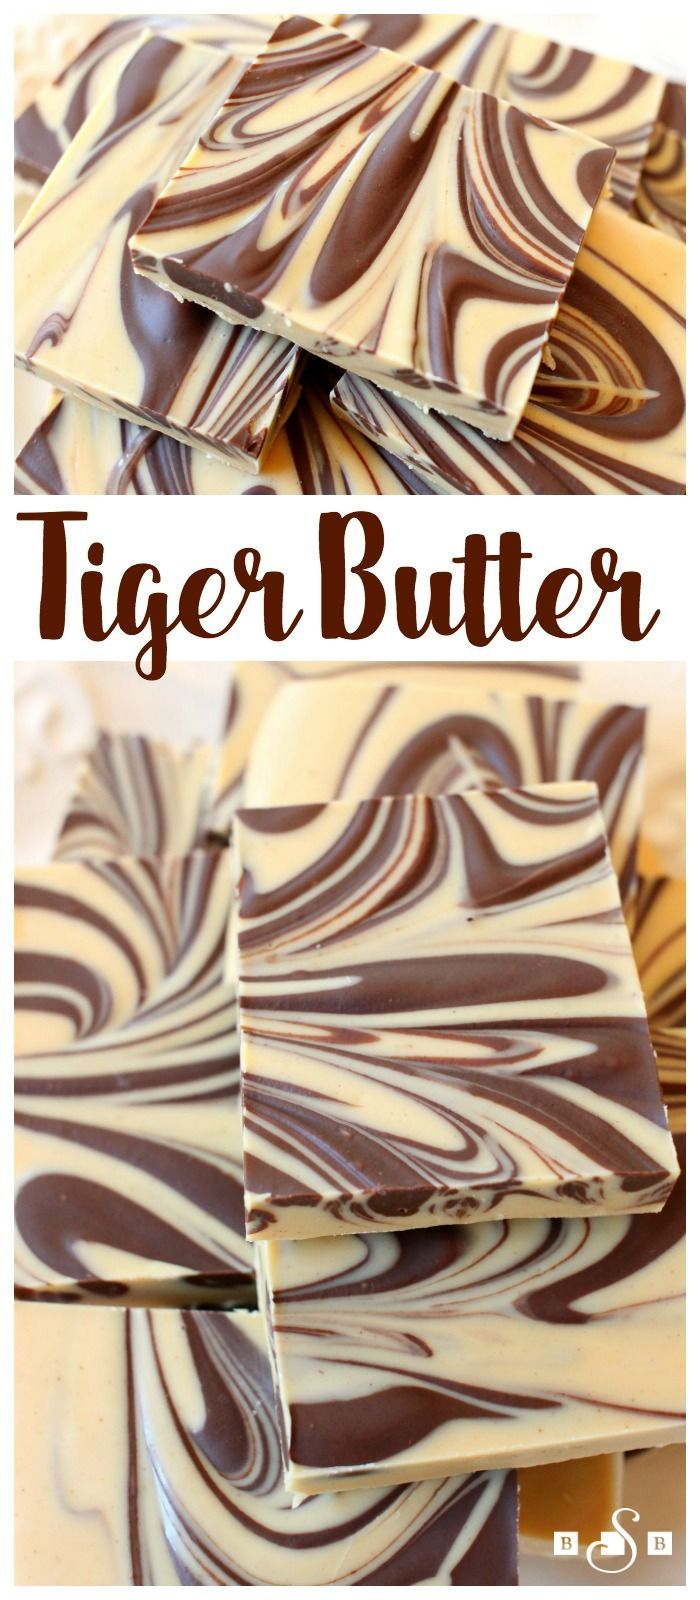 Tiger Butter Fudge - a simple but indulgent fudge recipe that requires only 3 ingredients and 5 minutes to make! Butter With A Side of Bread(Chocolate Bars 3 Ingredients)